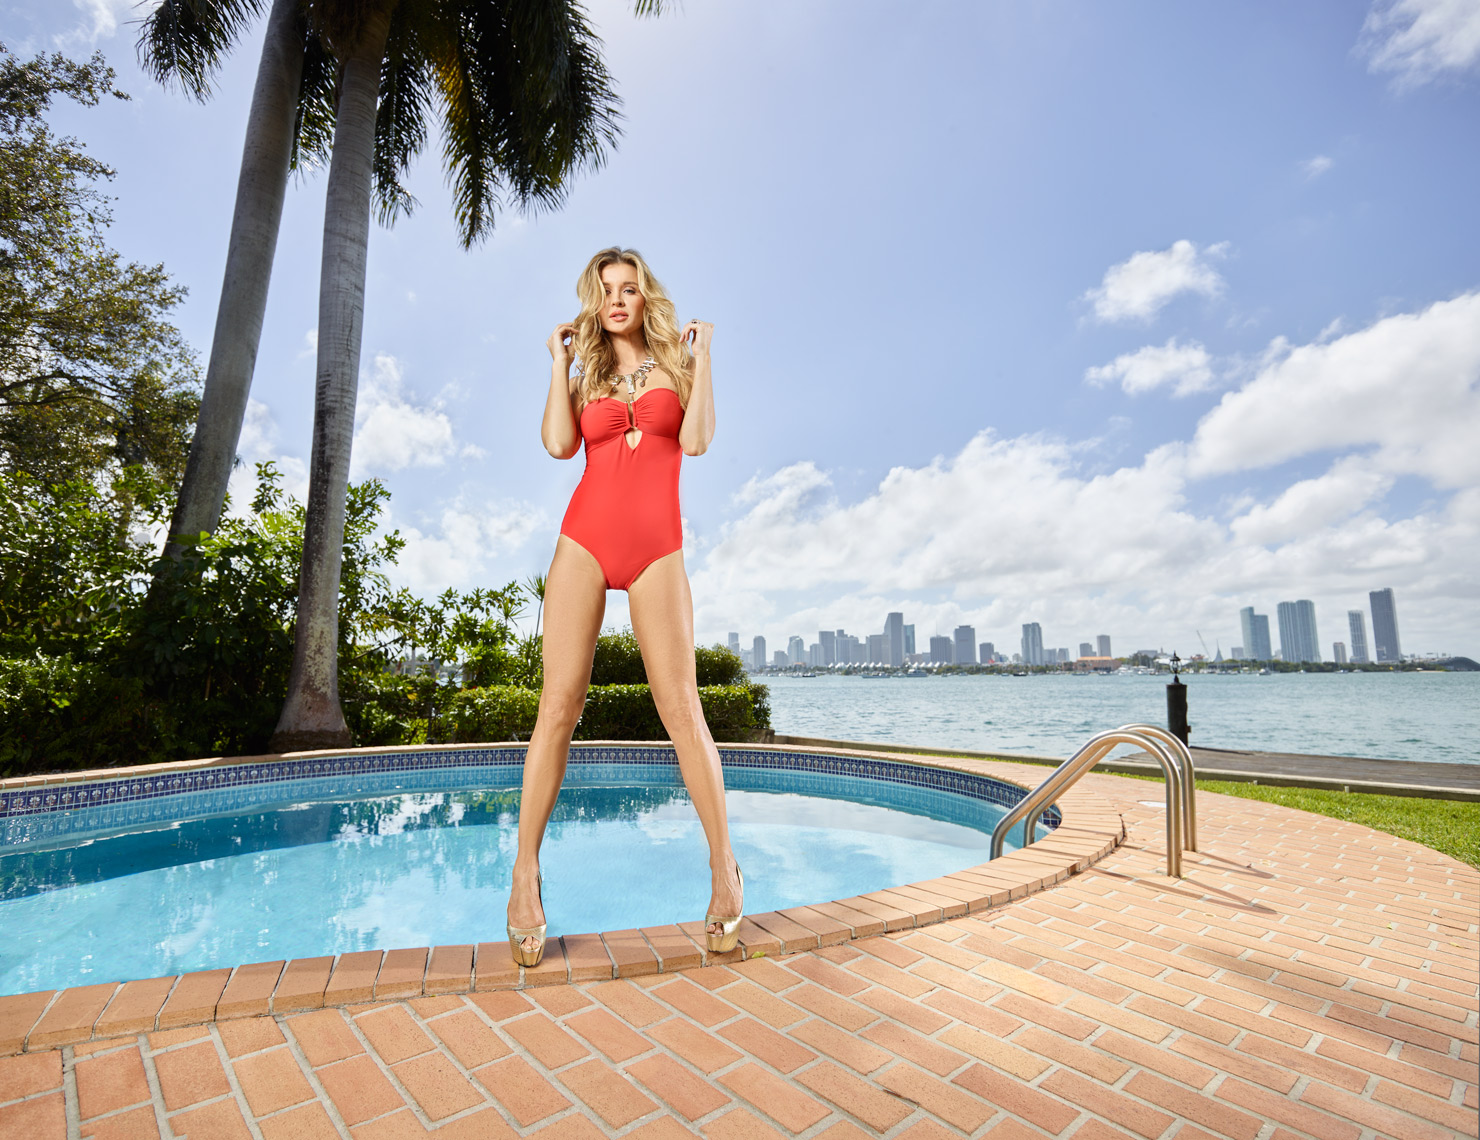 Swimsuit model on Miami Beach |